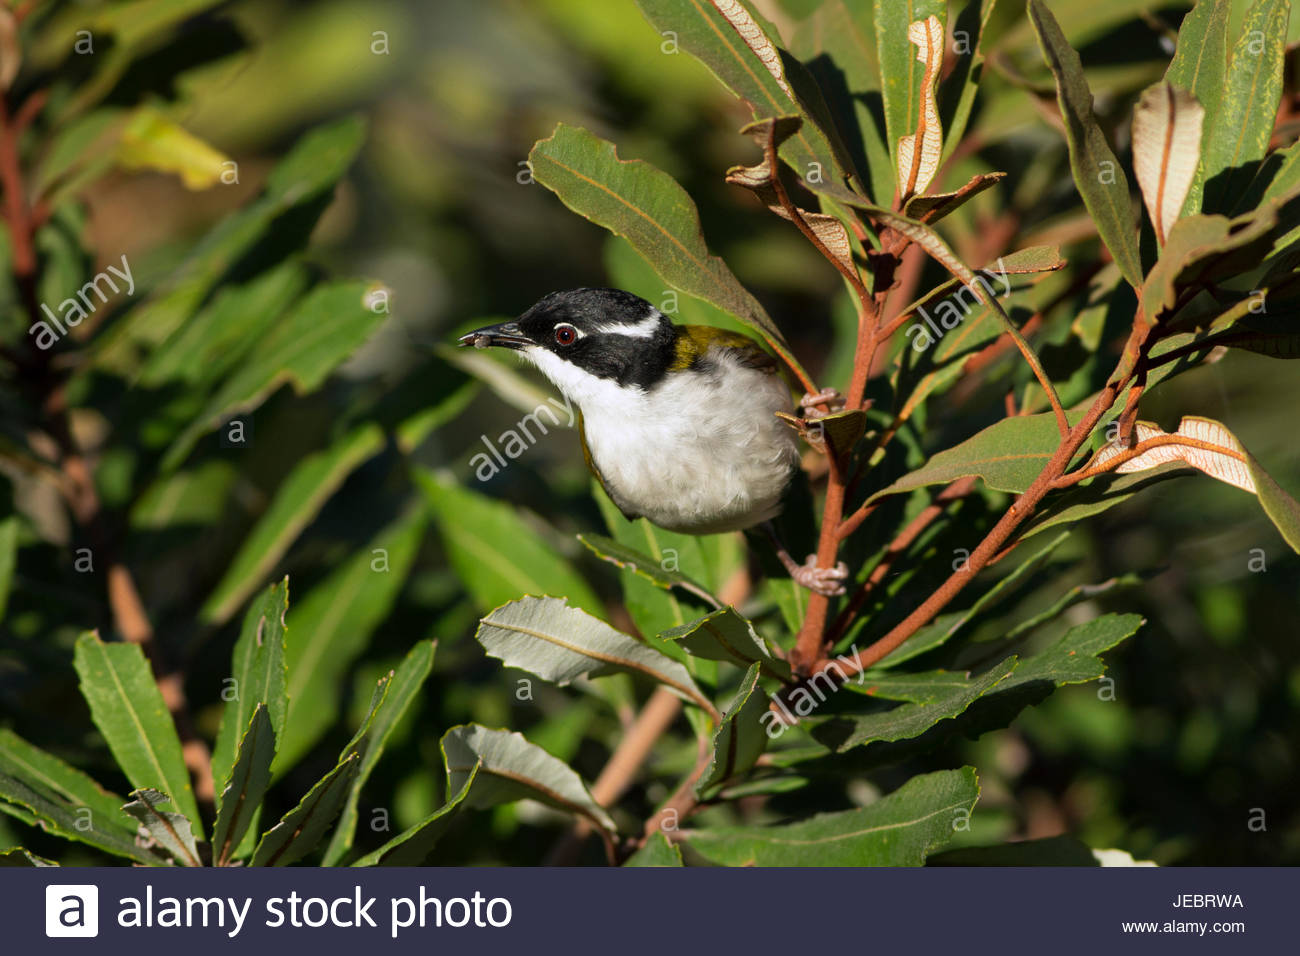 An adult White-throated Honey-eater with a prey item perched on a banksia branch. - Stock Image